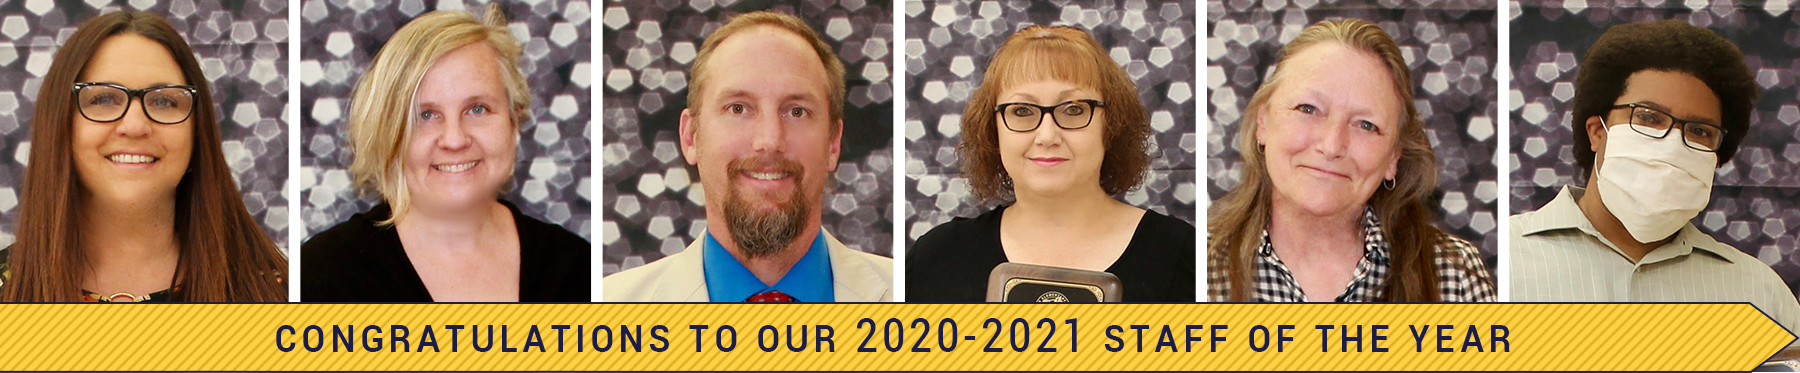 congratulations to our 2020-2021 Teachers of the Year